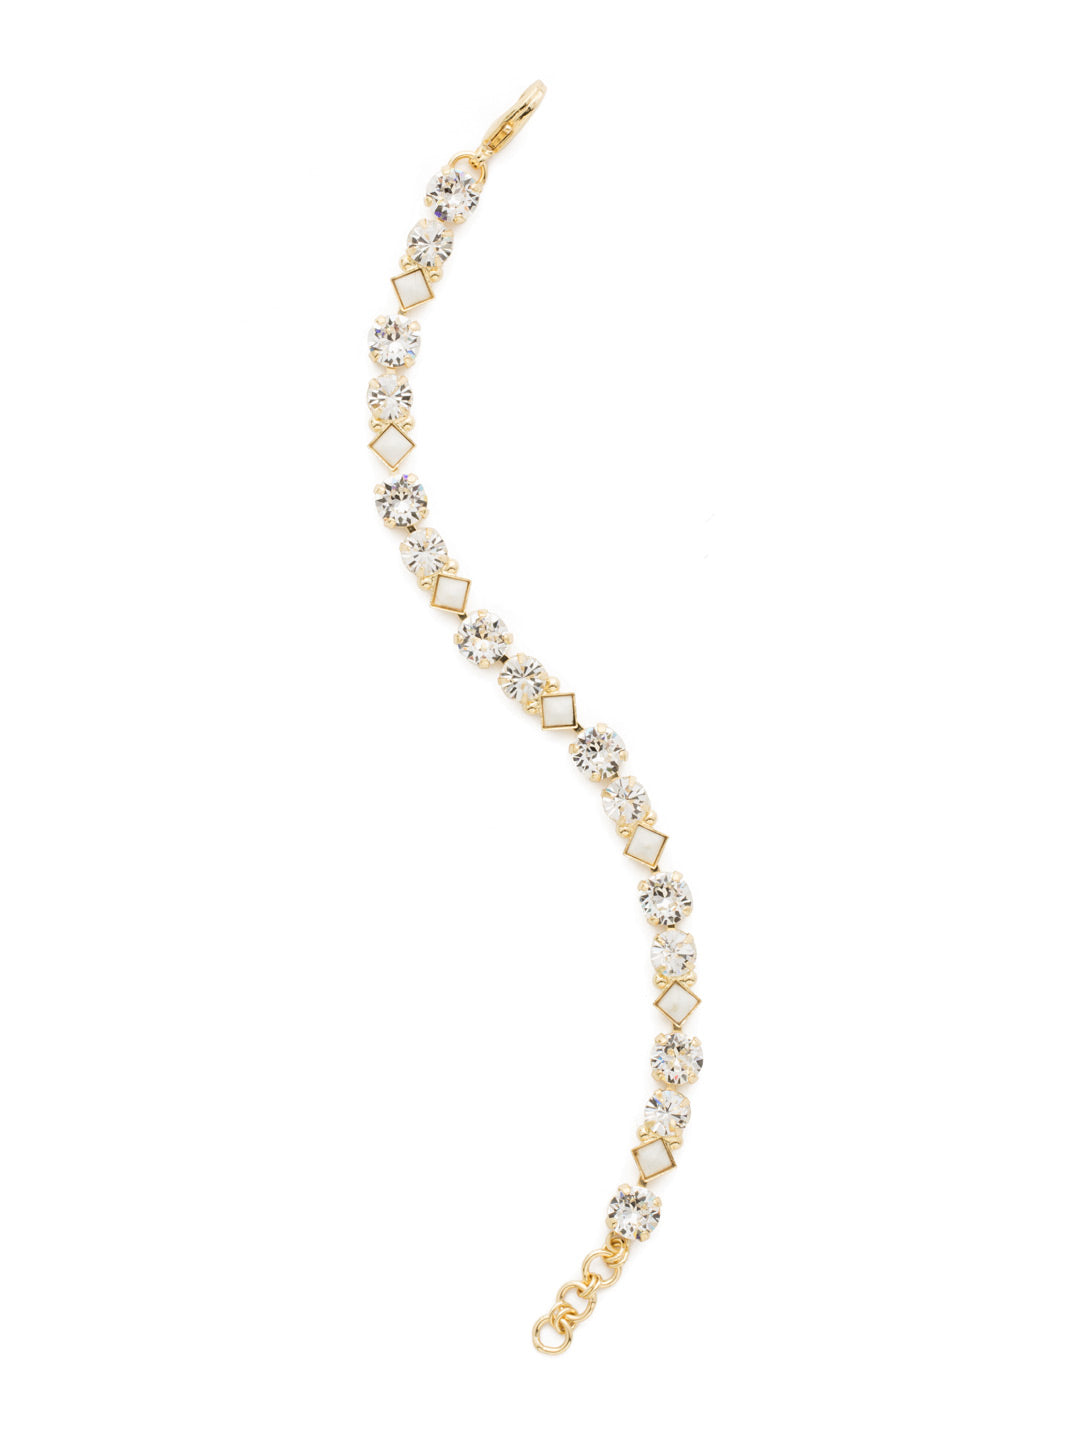 Darling Diamond Tennis Bracelet - BDN36BGCRY